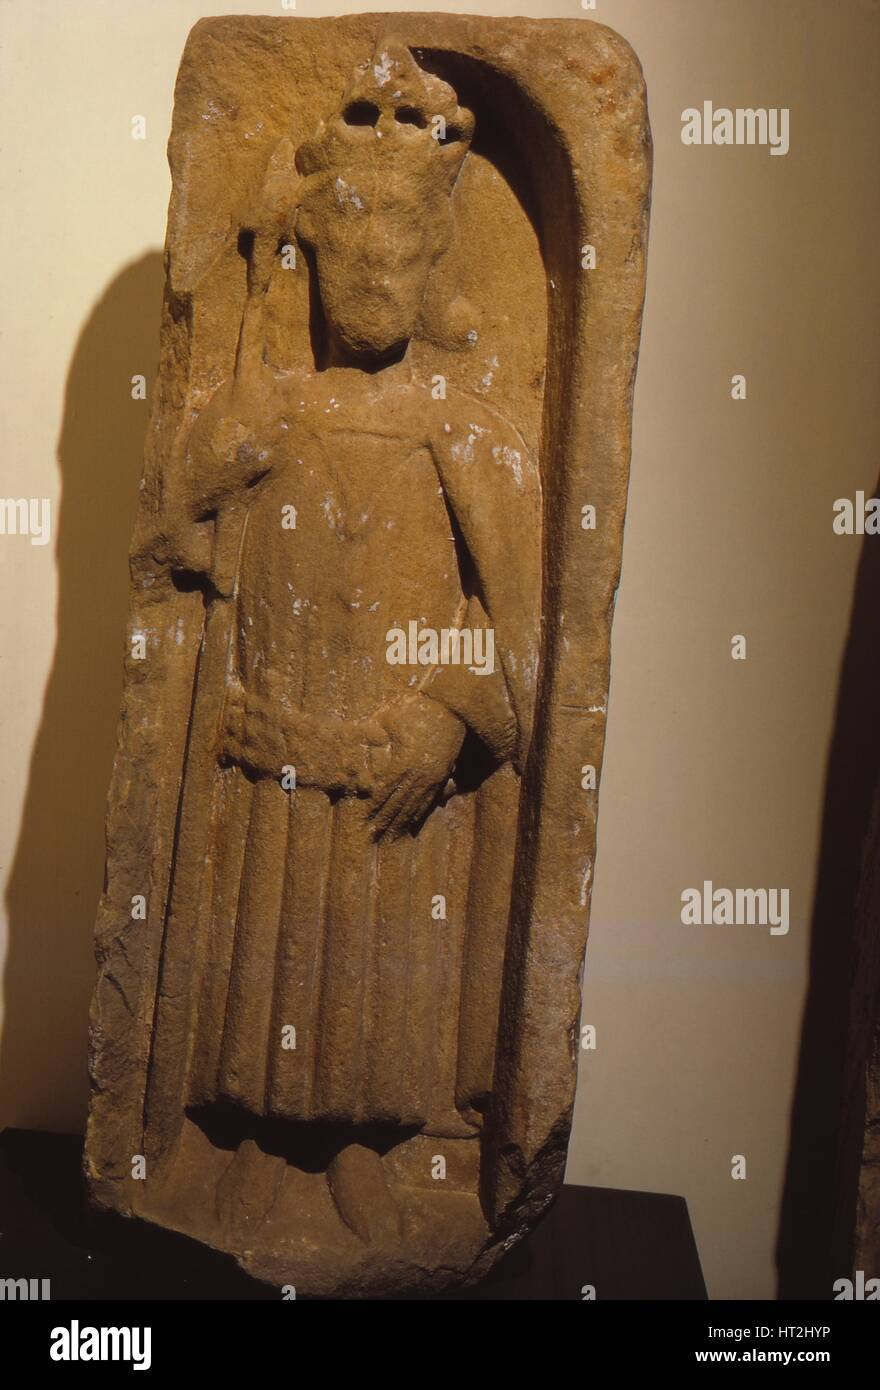 Relief figure of King Olaf, from St. Magnus Cathedral, Kirkwall, Orkney, 20th century. Artist: Unknown. - Stock Image